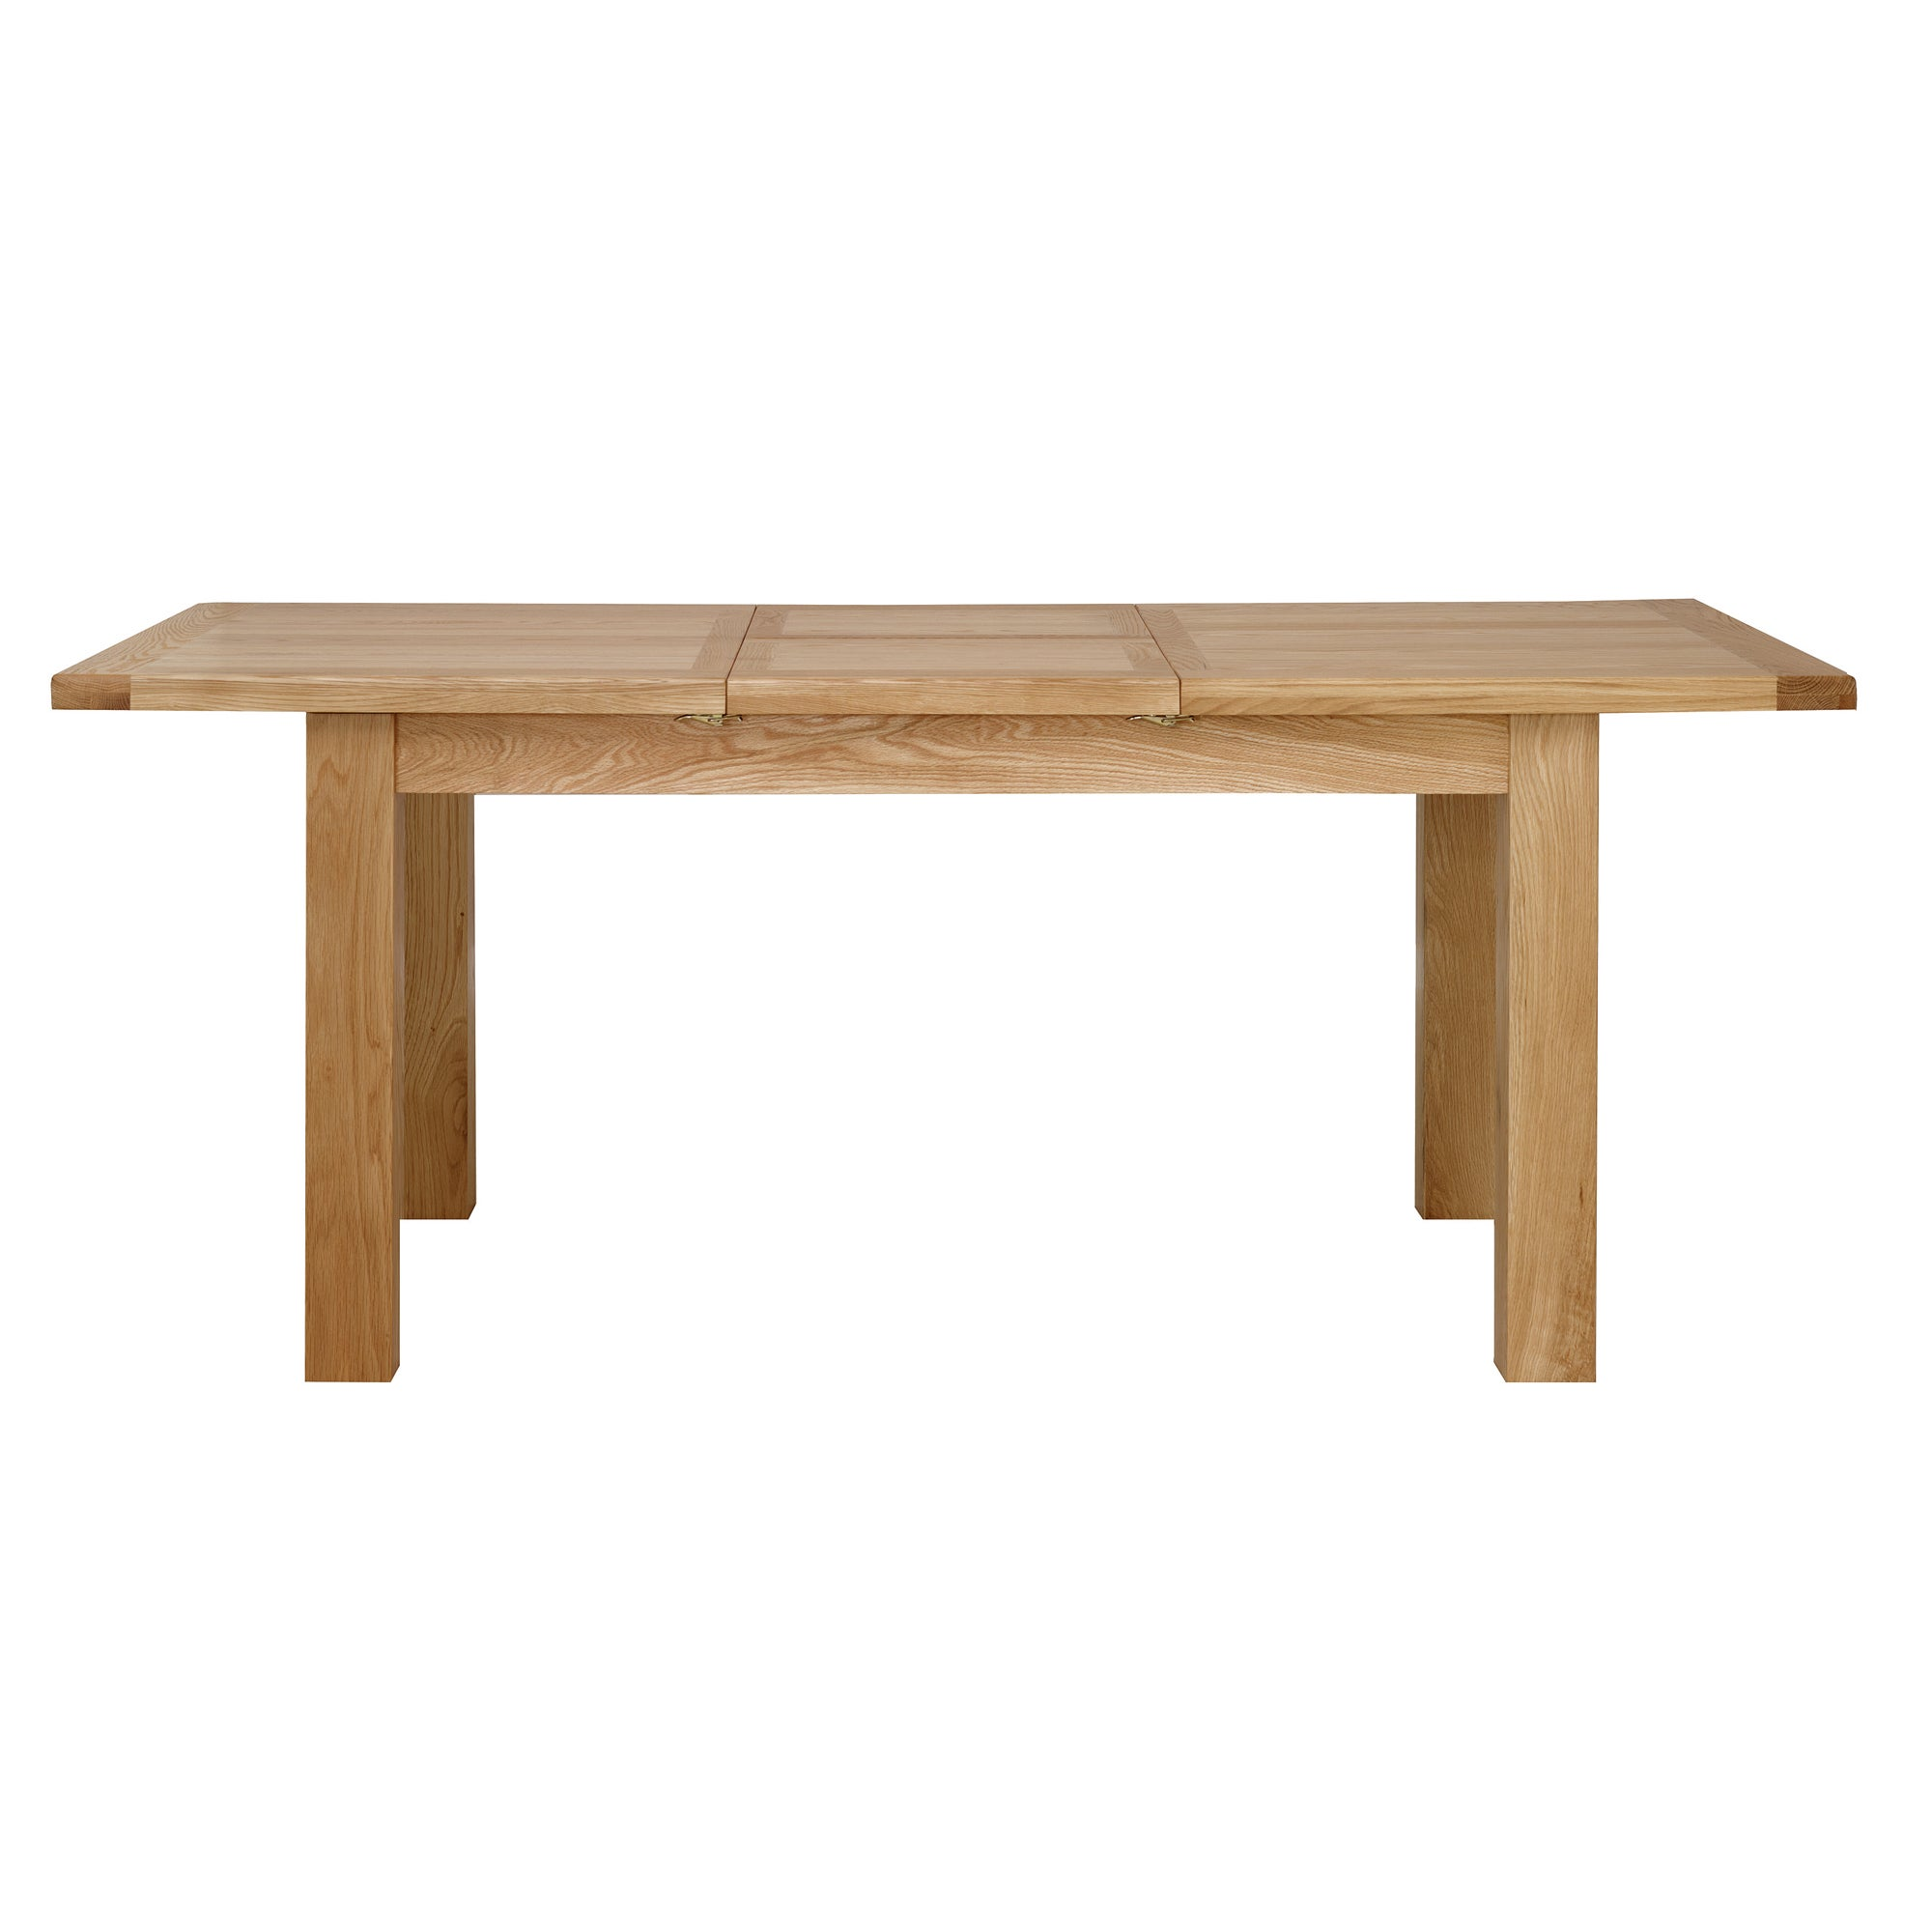 Harrogate Oak Large Extending Dining Table